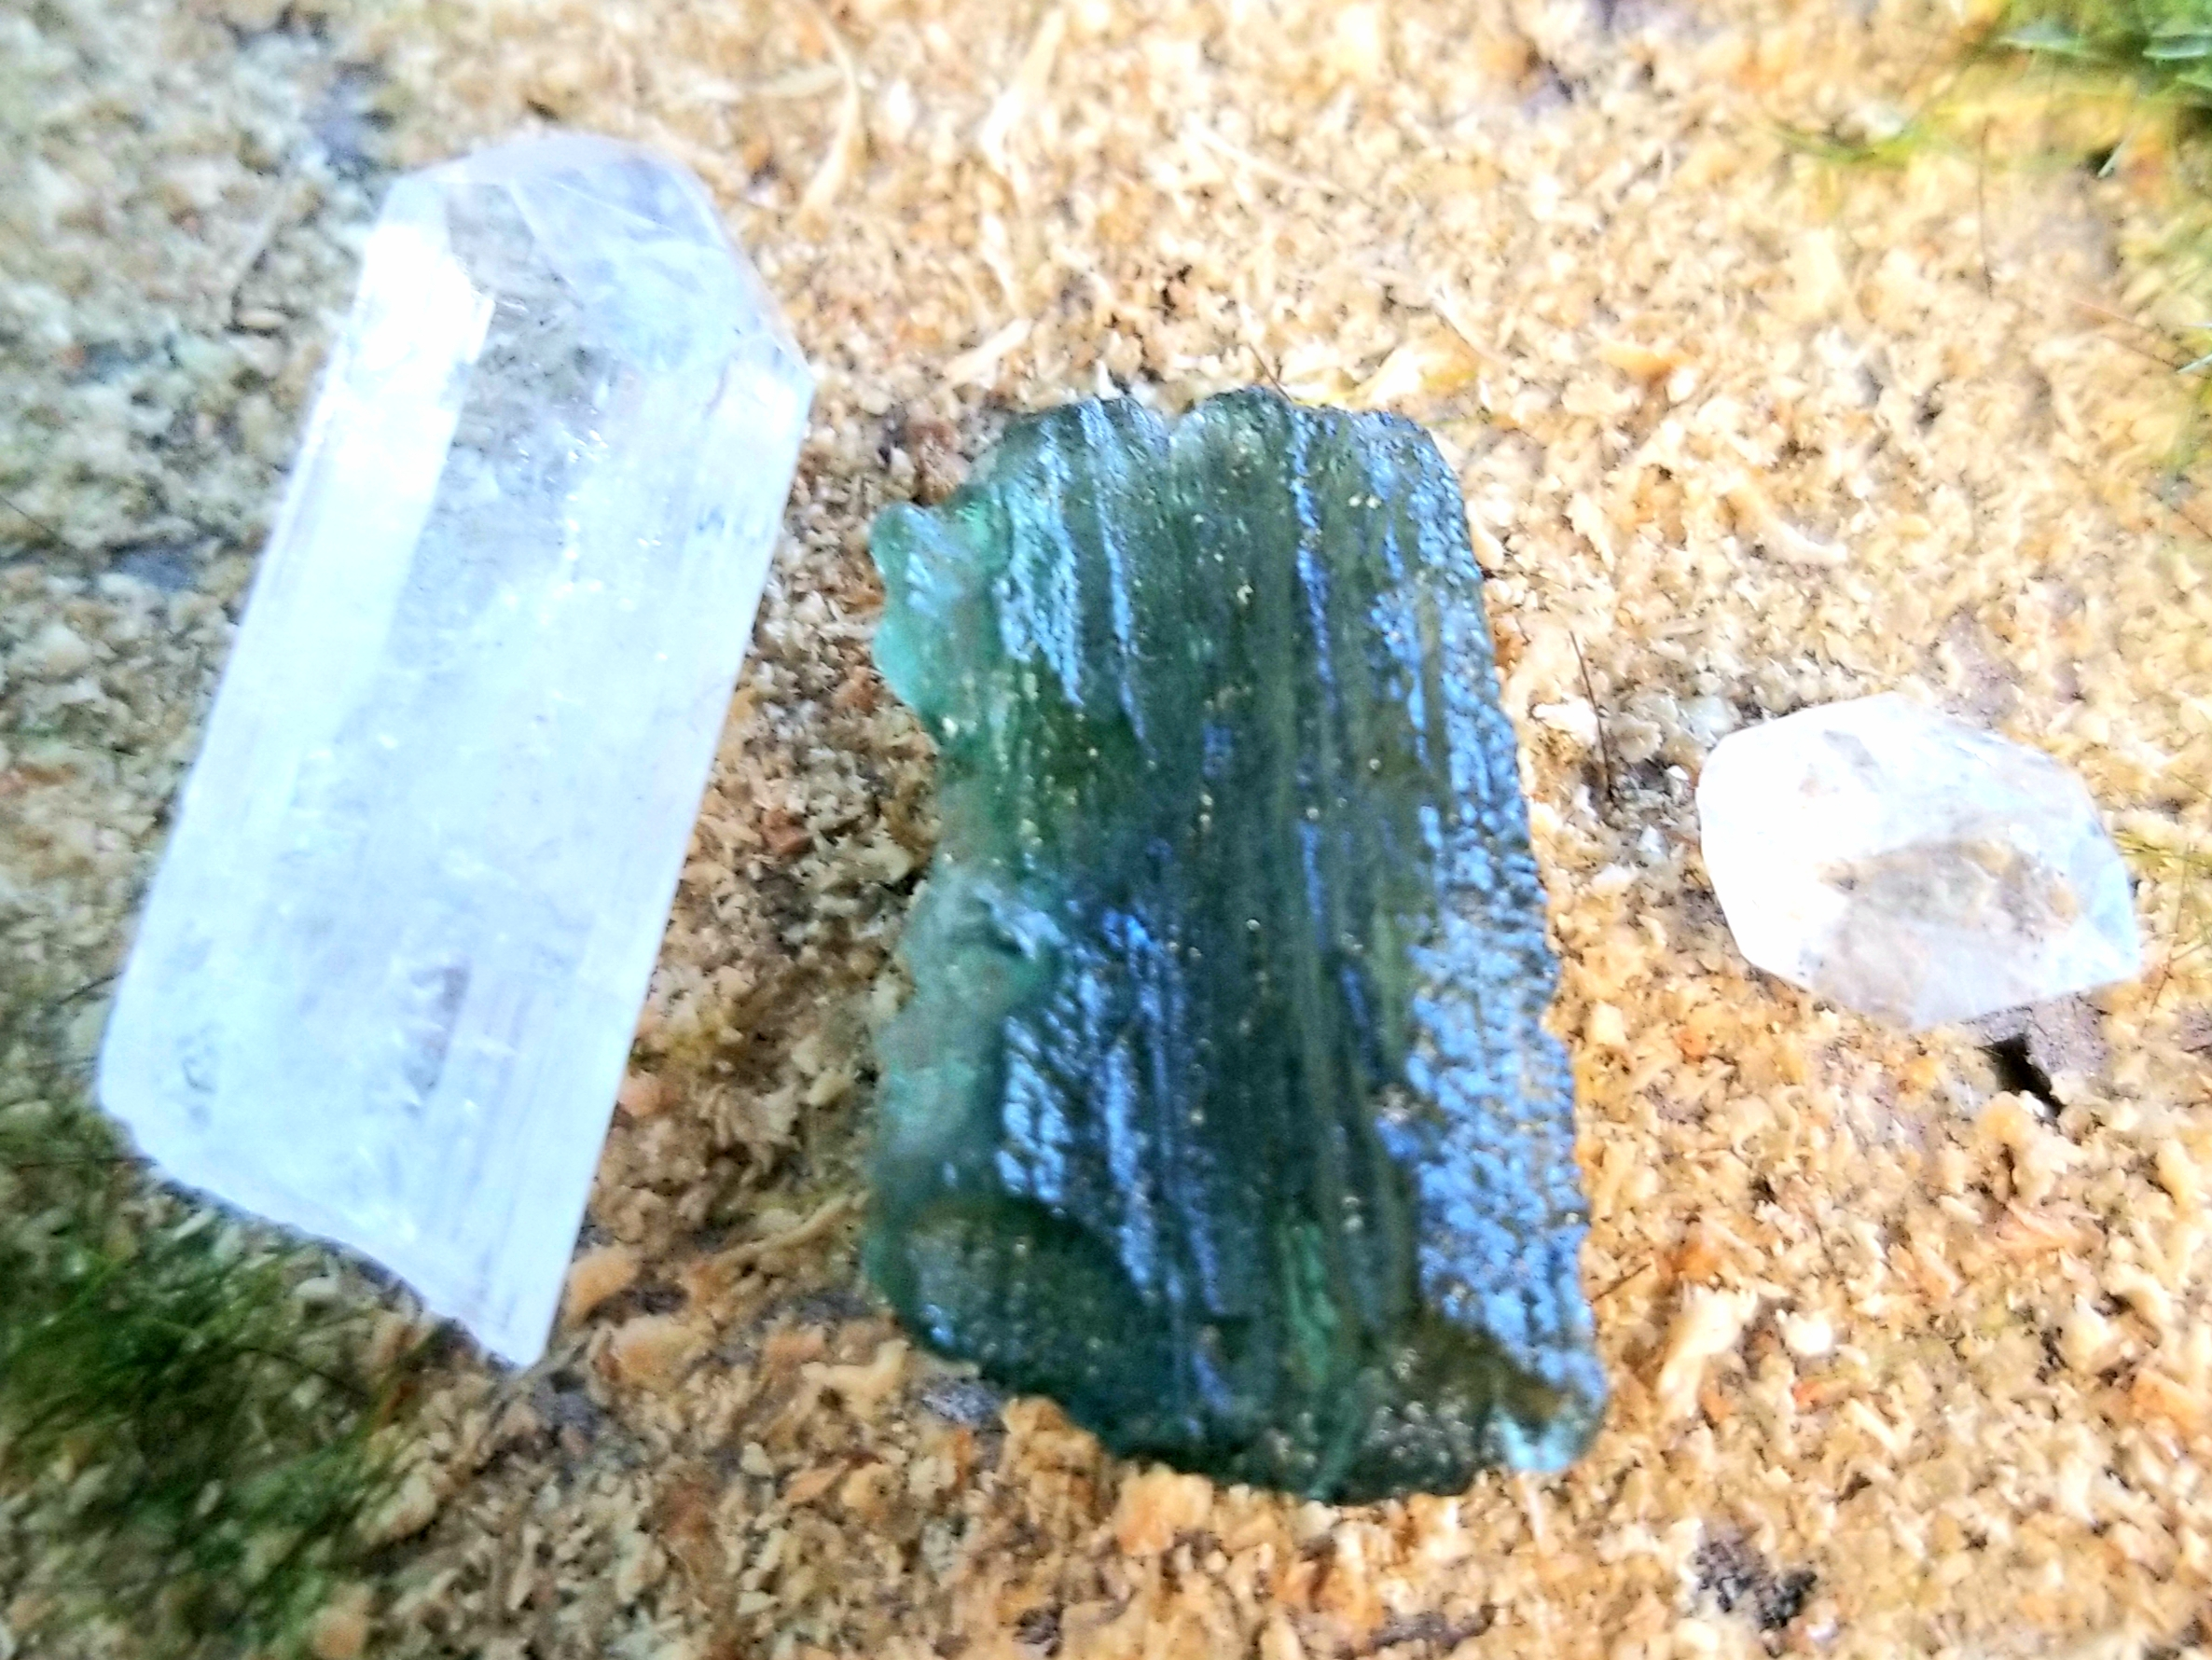 How to Meditate with Crystals: Simple Ways to Change Your Life